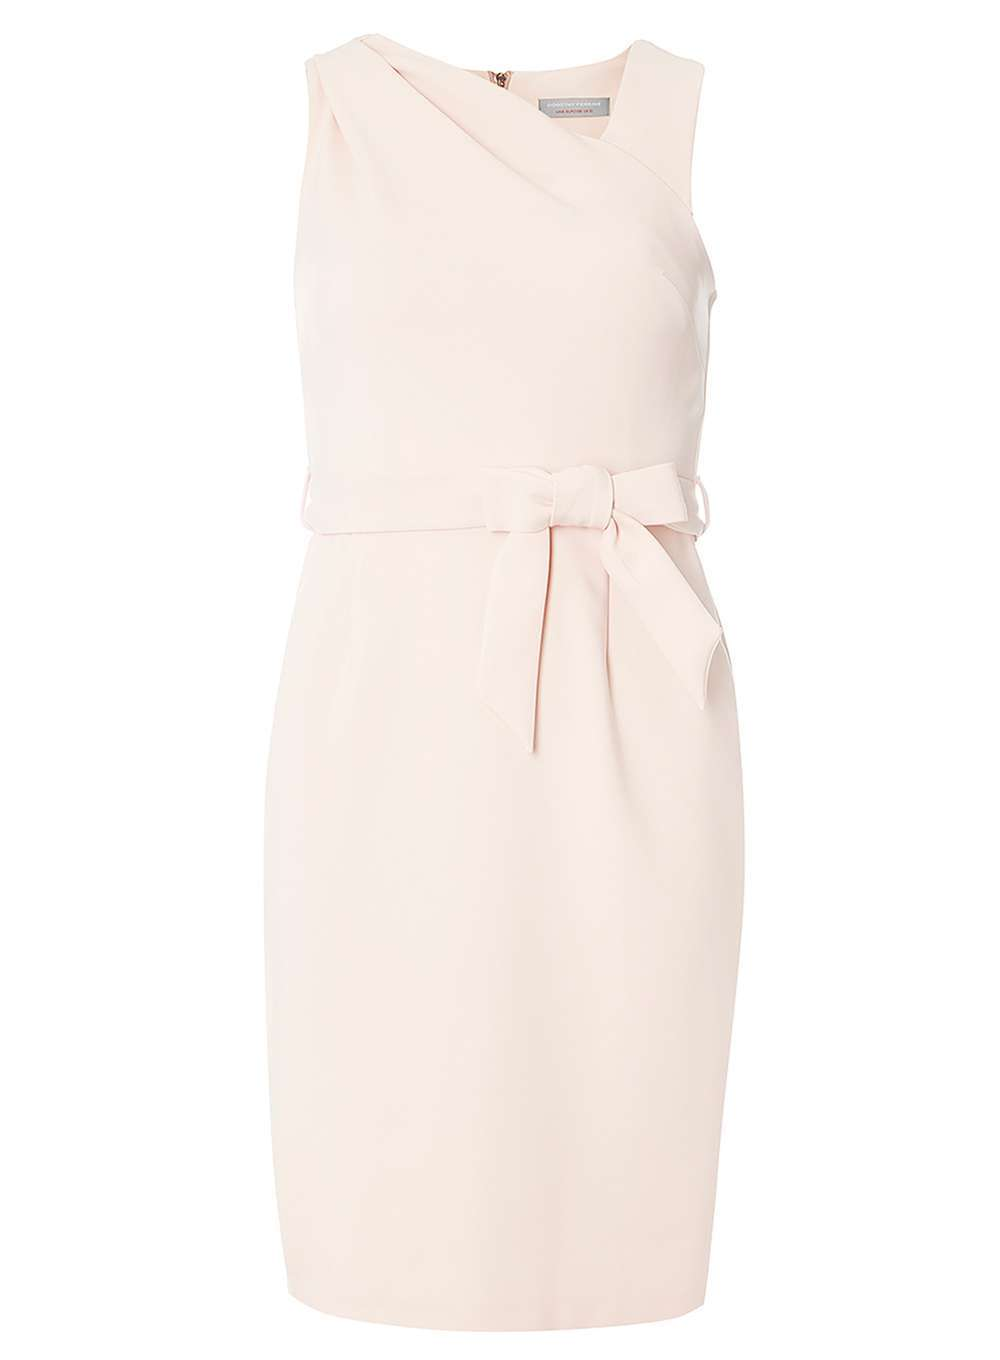 Womens Petite Blush Belted Dress Pink - style: shift; length: below the knee; fit: tailored/fitted; pattern: plain; sleeve style: sleeveless; neckline: asymmetric; hip detail: fitted at hip; waist detail: belted waist/tie at waist/drawstring; predominant colour: blush; occasions: evening; fibres: polyester/polyamide - stretch; sleeve length: sleeveless; pattern type: fabric; texture group: woven light midweight; season: a/w 2016